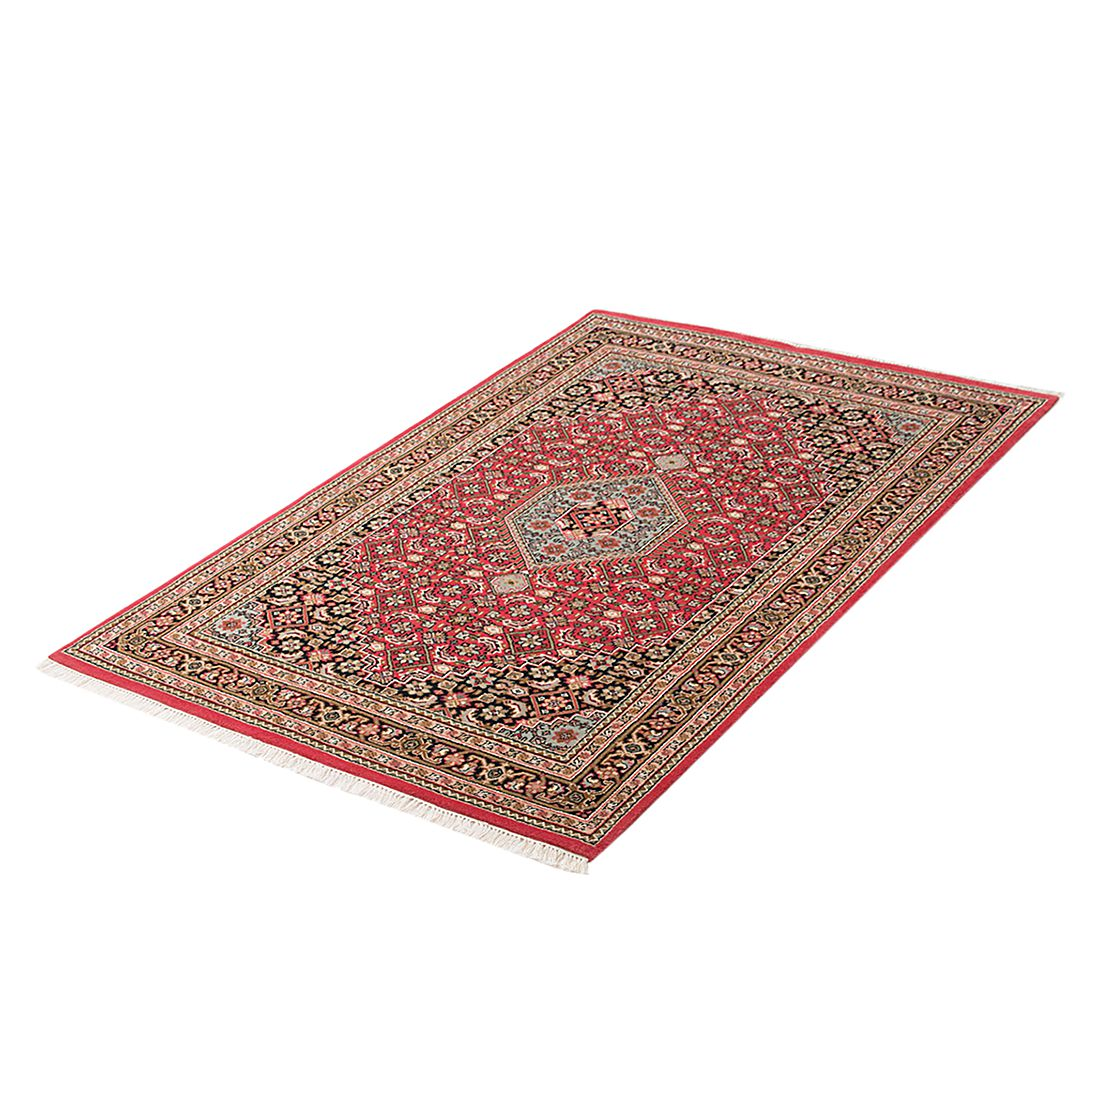 Teppich-Indo Royal Mumbai Rot - Reine Wolle - 200cm x 300cm, Parwis